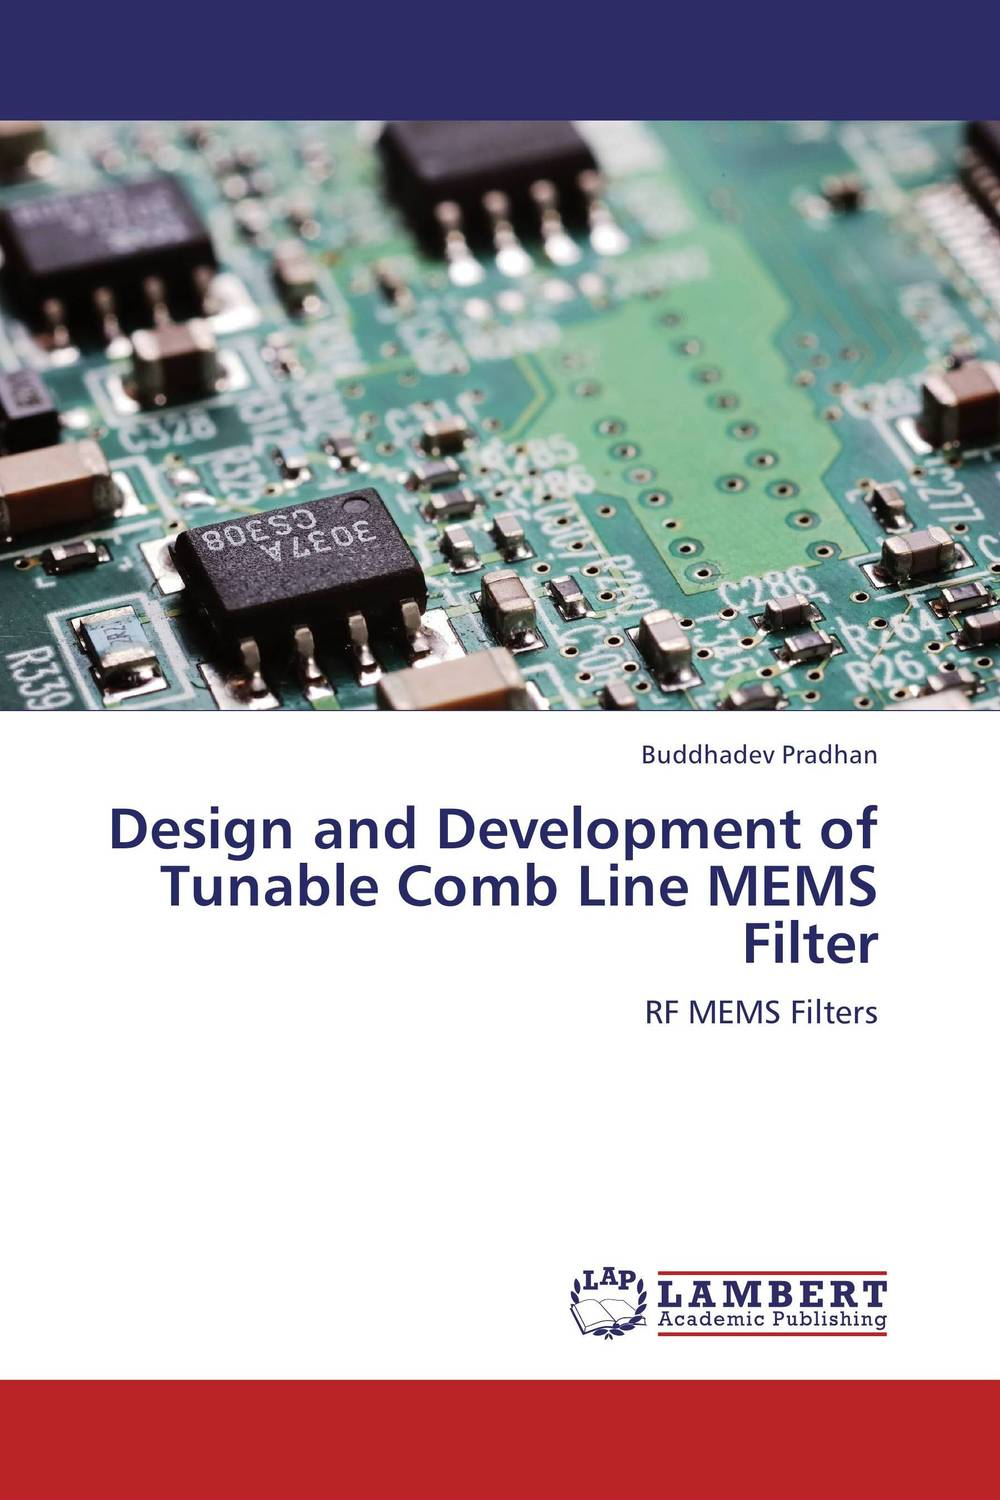 Design and Development of Tunable Comb Line MEMS Filter minhang bao analysis and design principles of mems devices